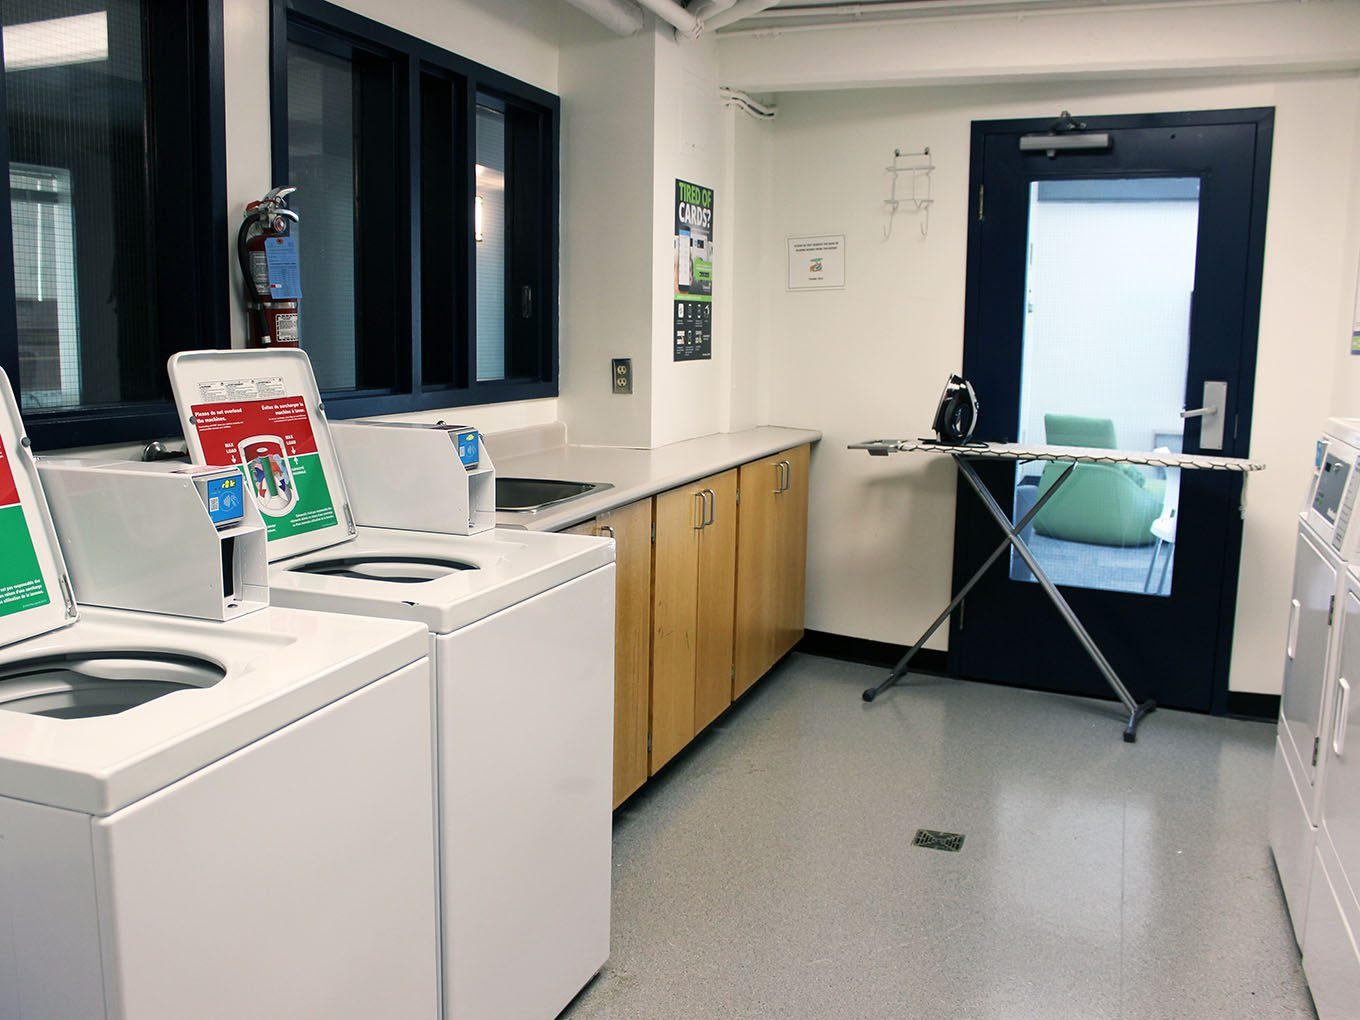 Suites and Amenities - Laundry room